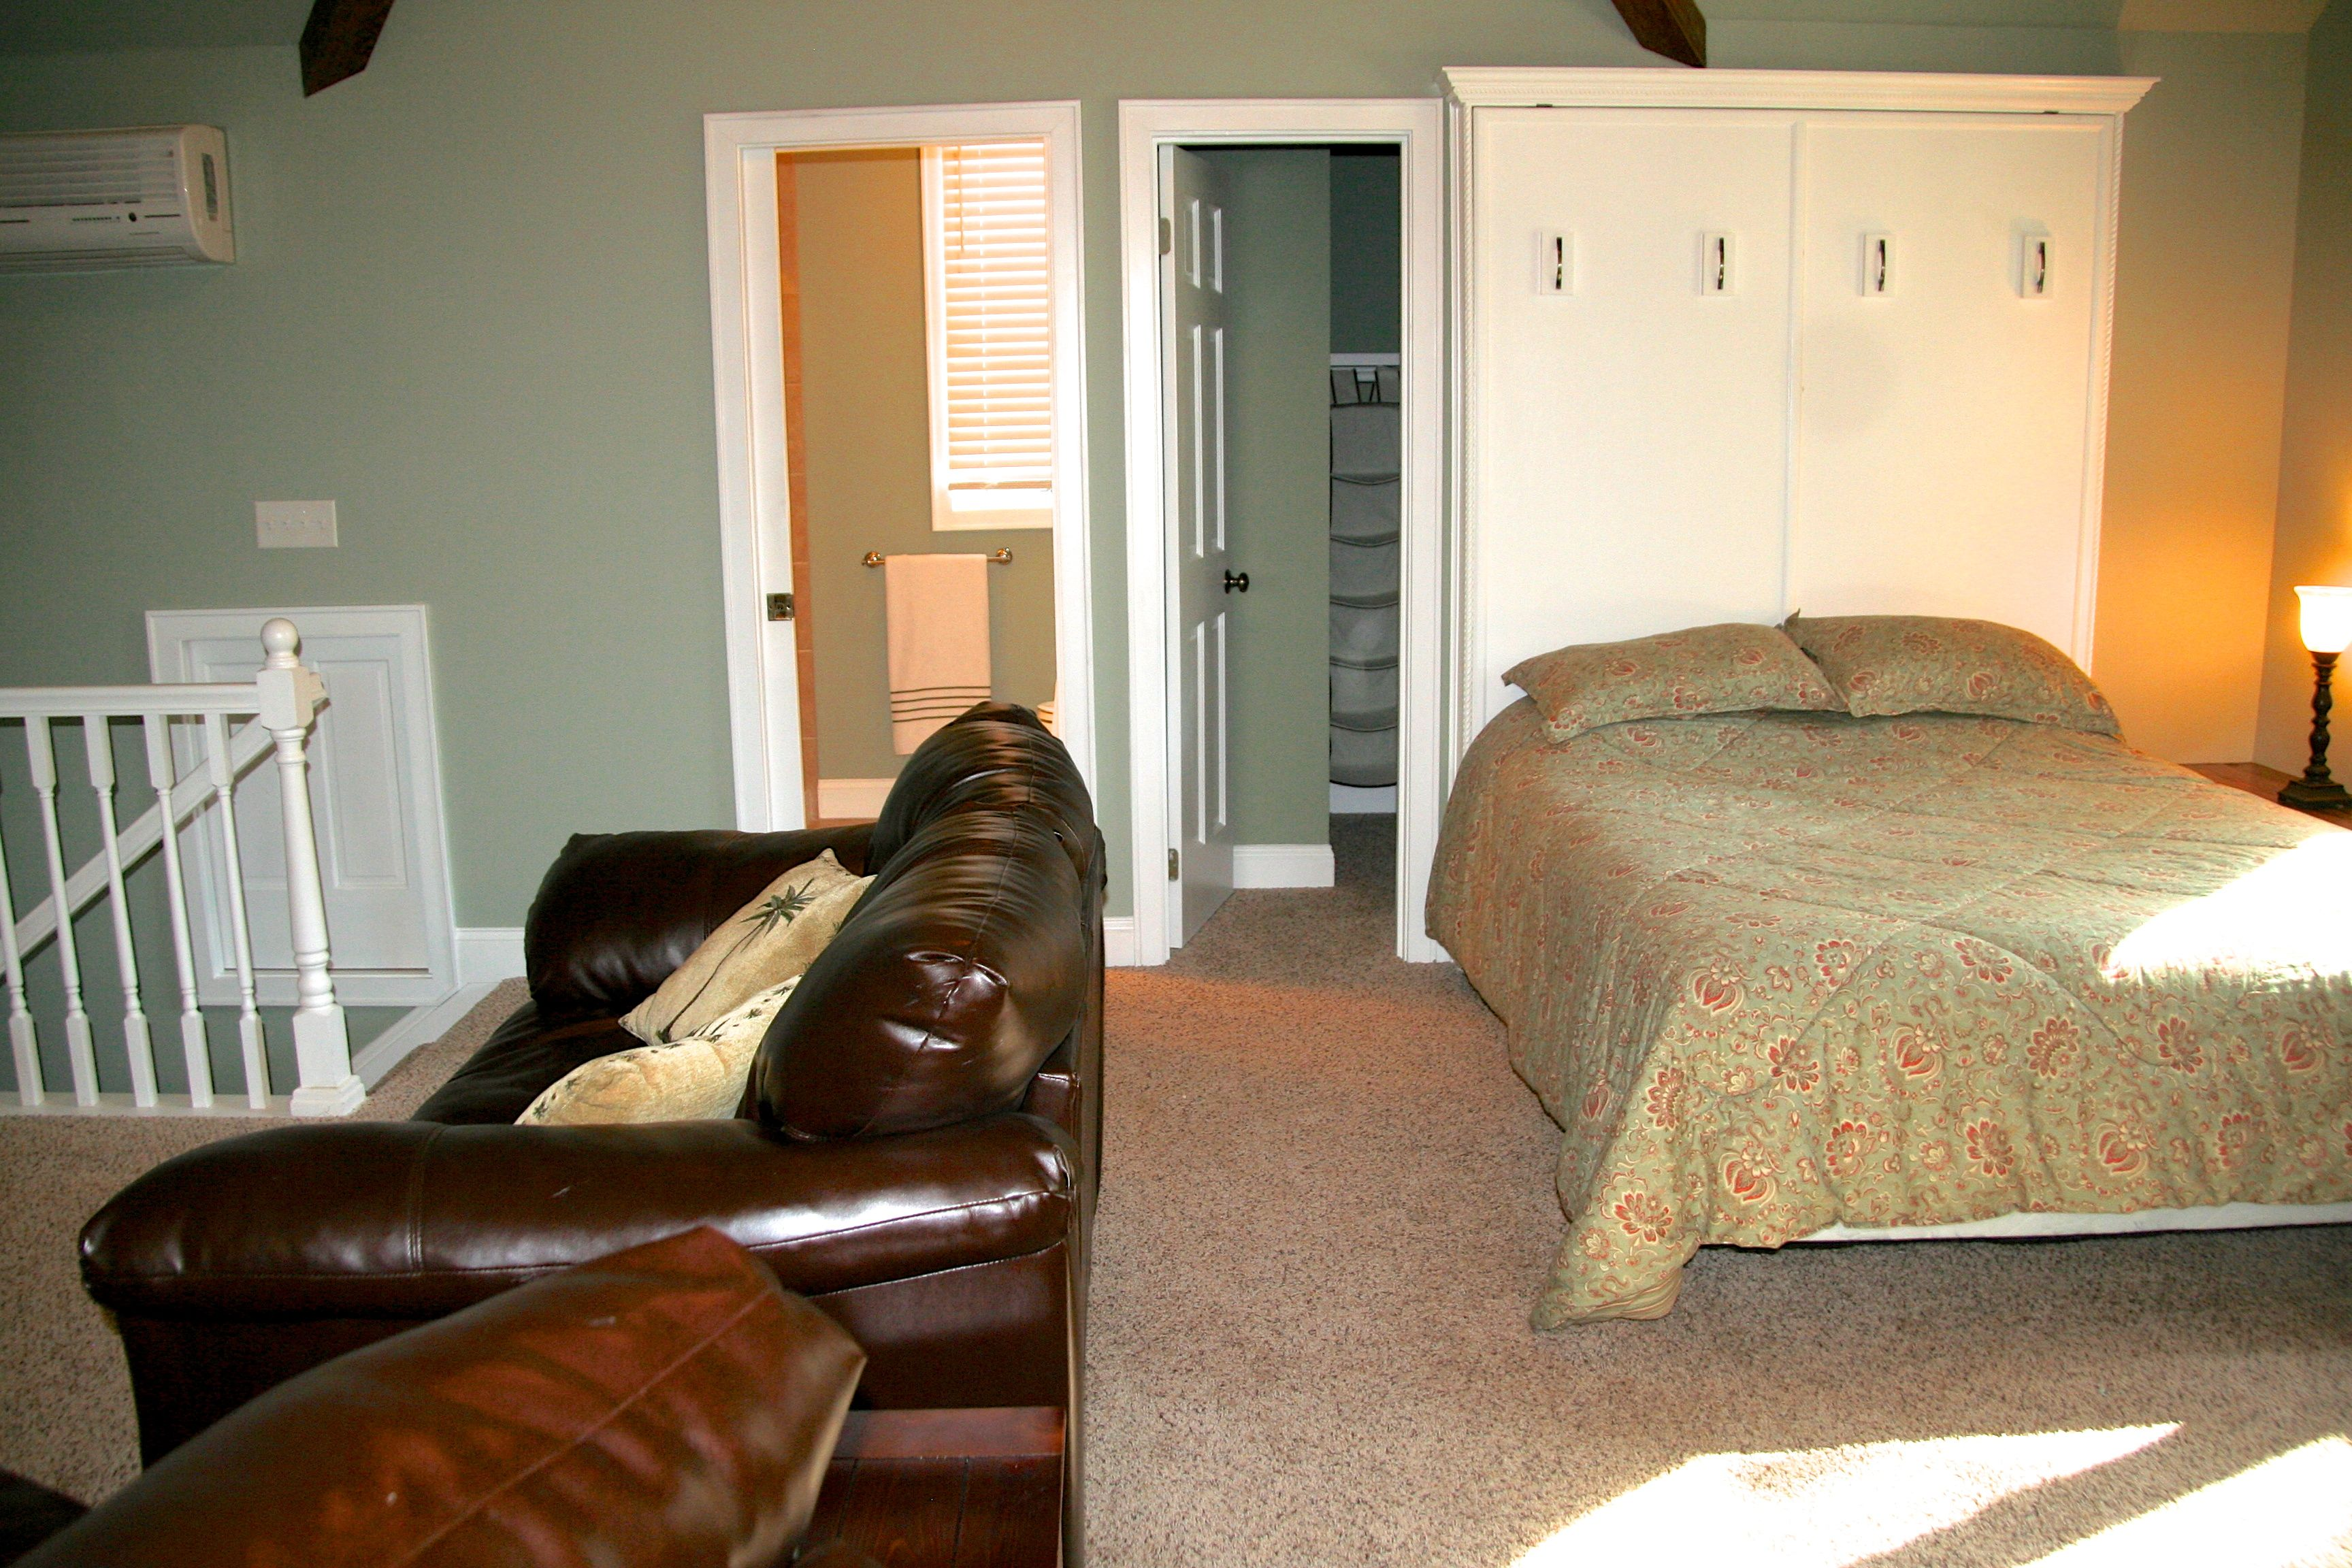 It has a wall mounted HDTV, full bath, and queen bed.